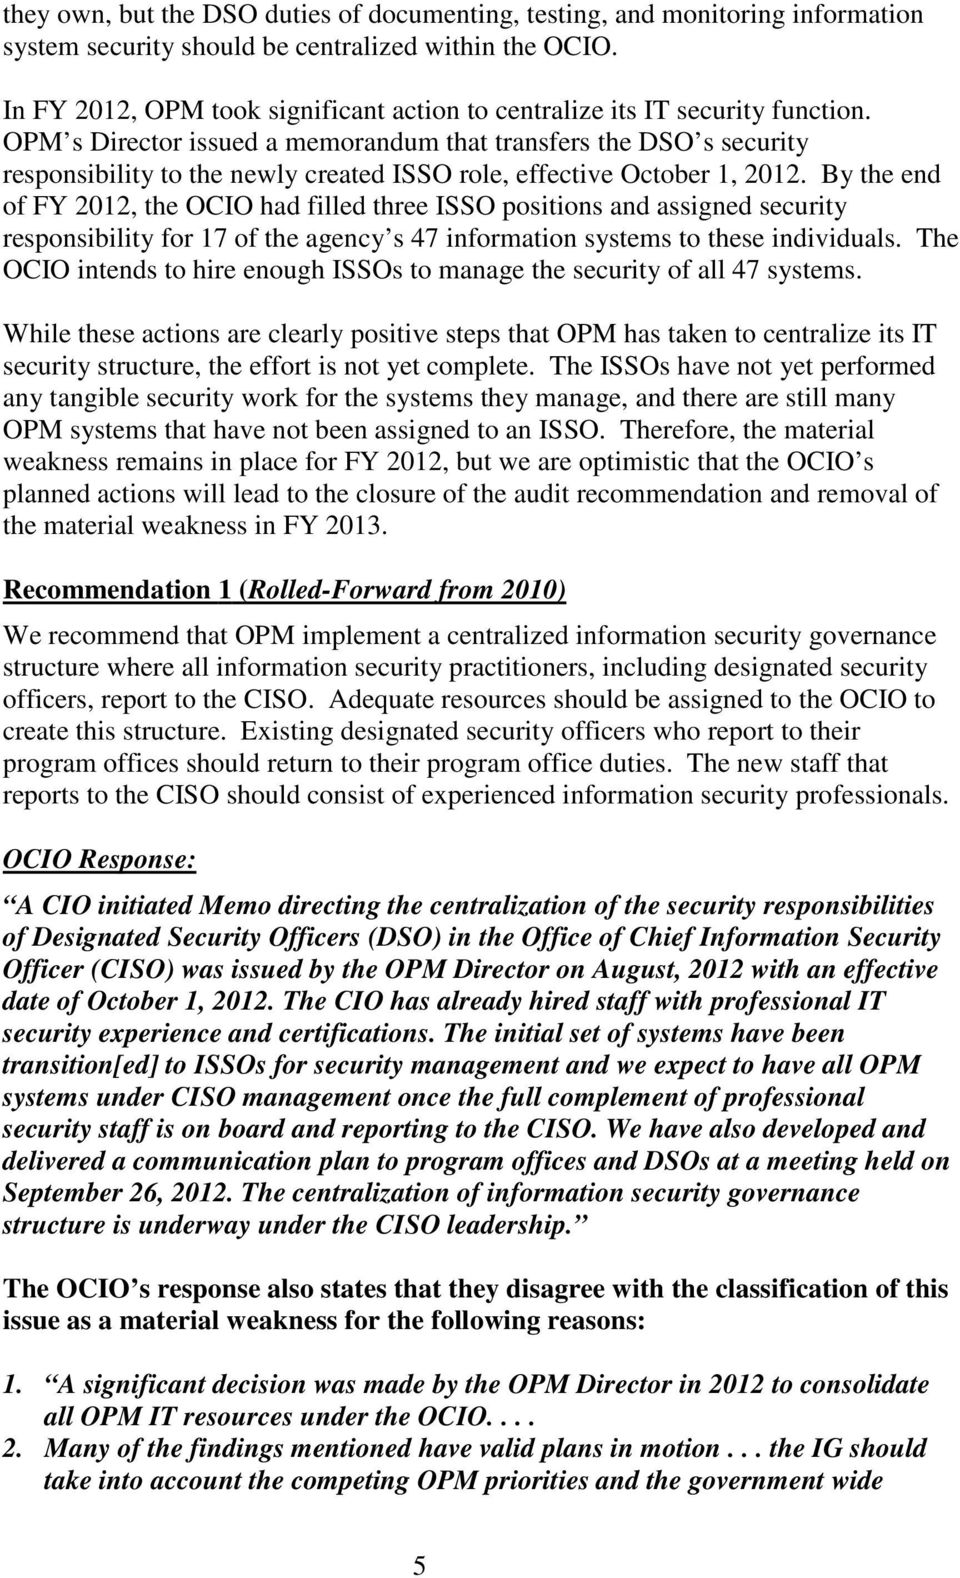 OPM s Director issued a memorandum that transfers the DSO s security responsibility to the newly created ISSO role, effective October 1, 2012.